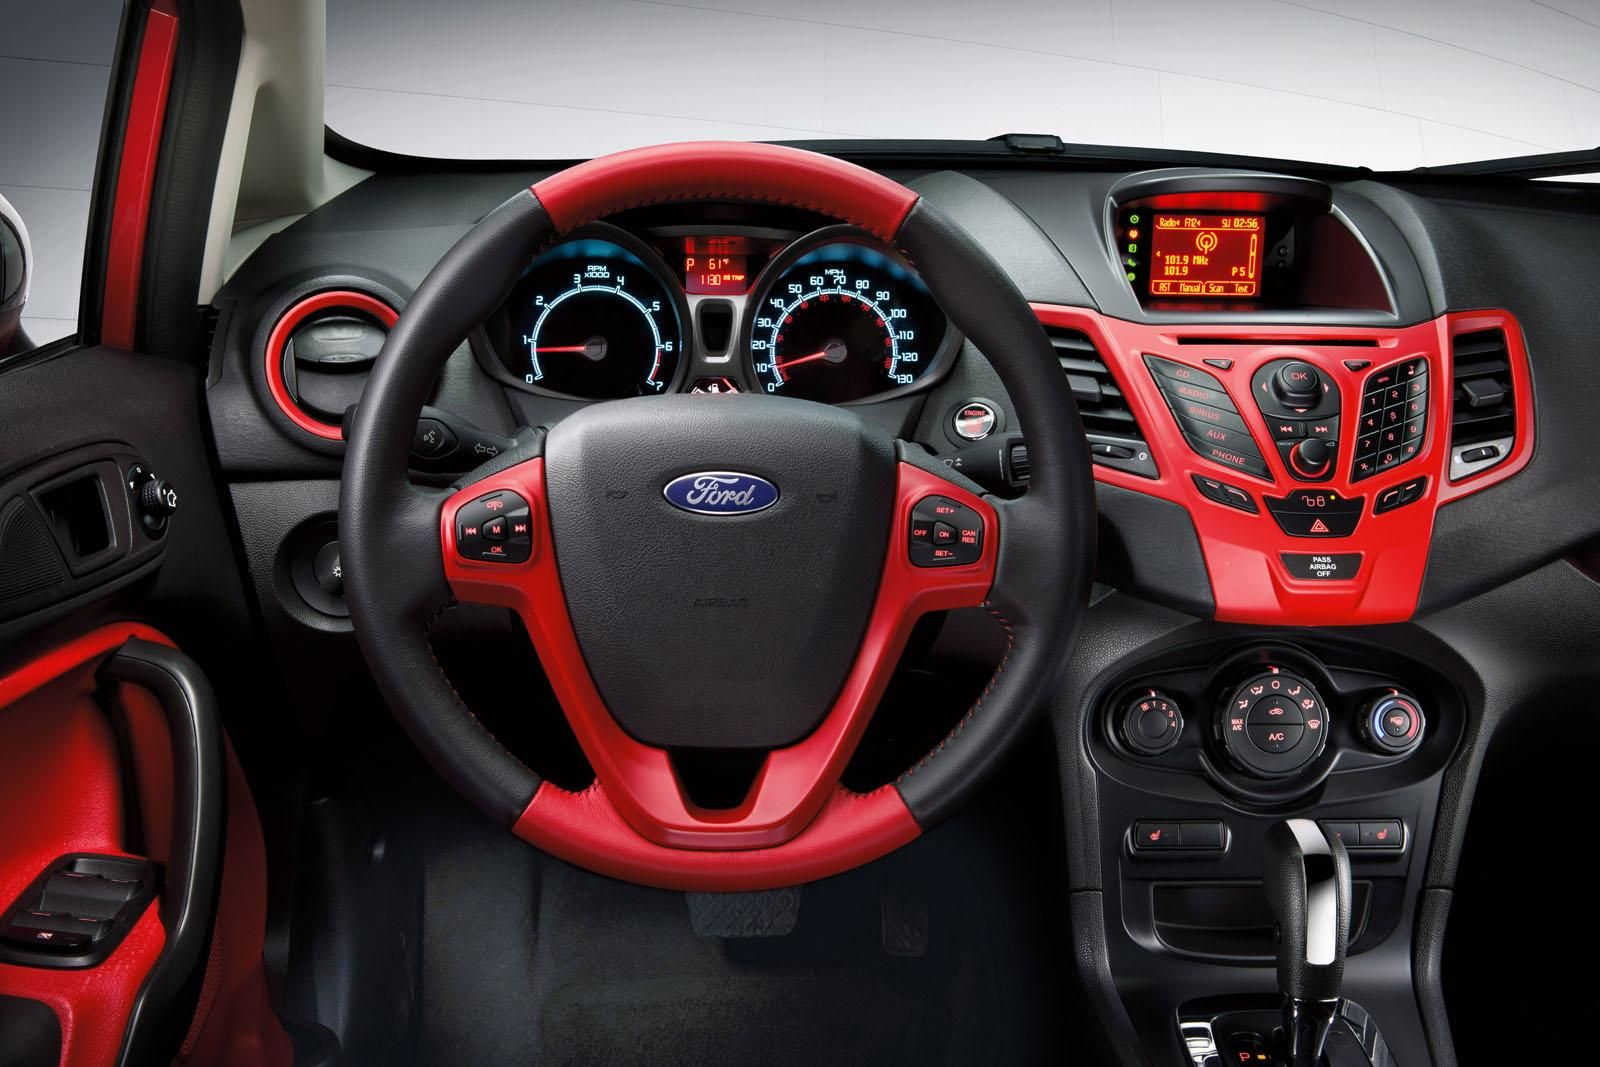 2012 Ford Fiesta Dashboard Google Search With Images Ford